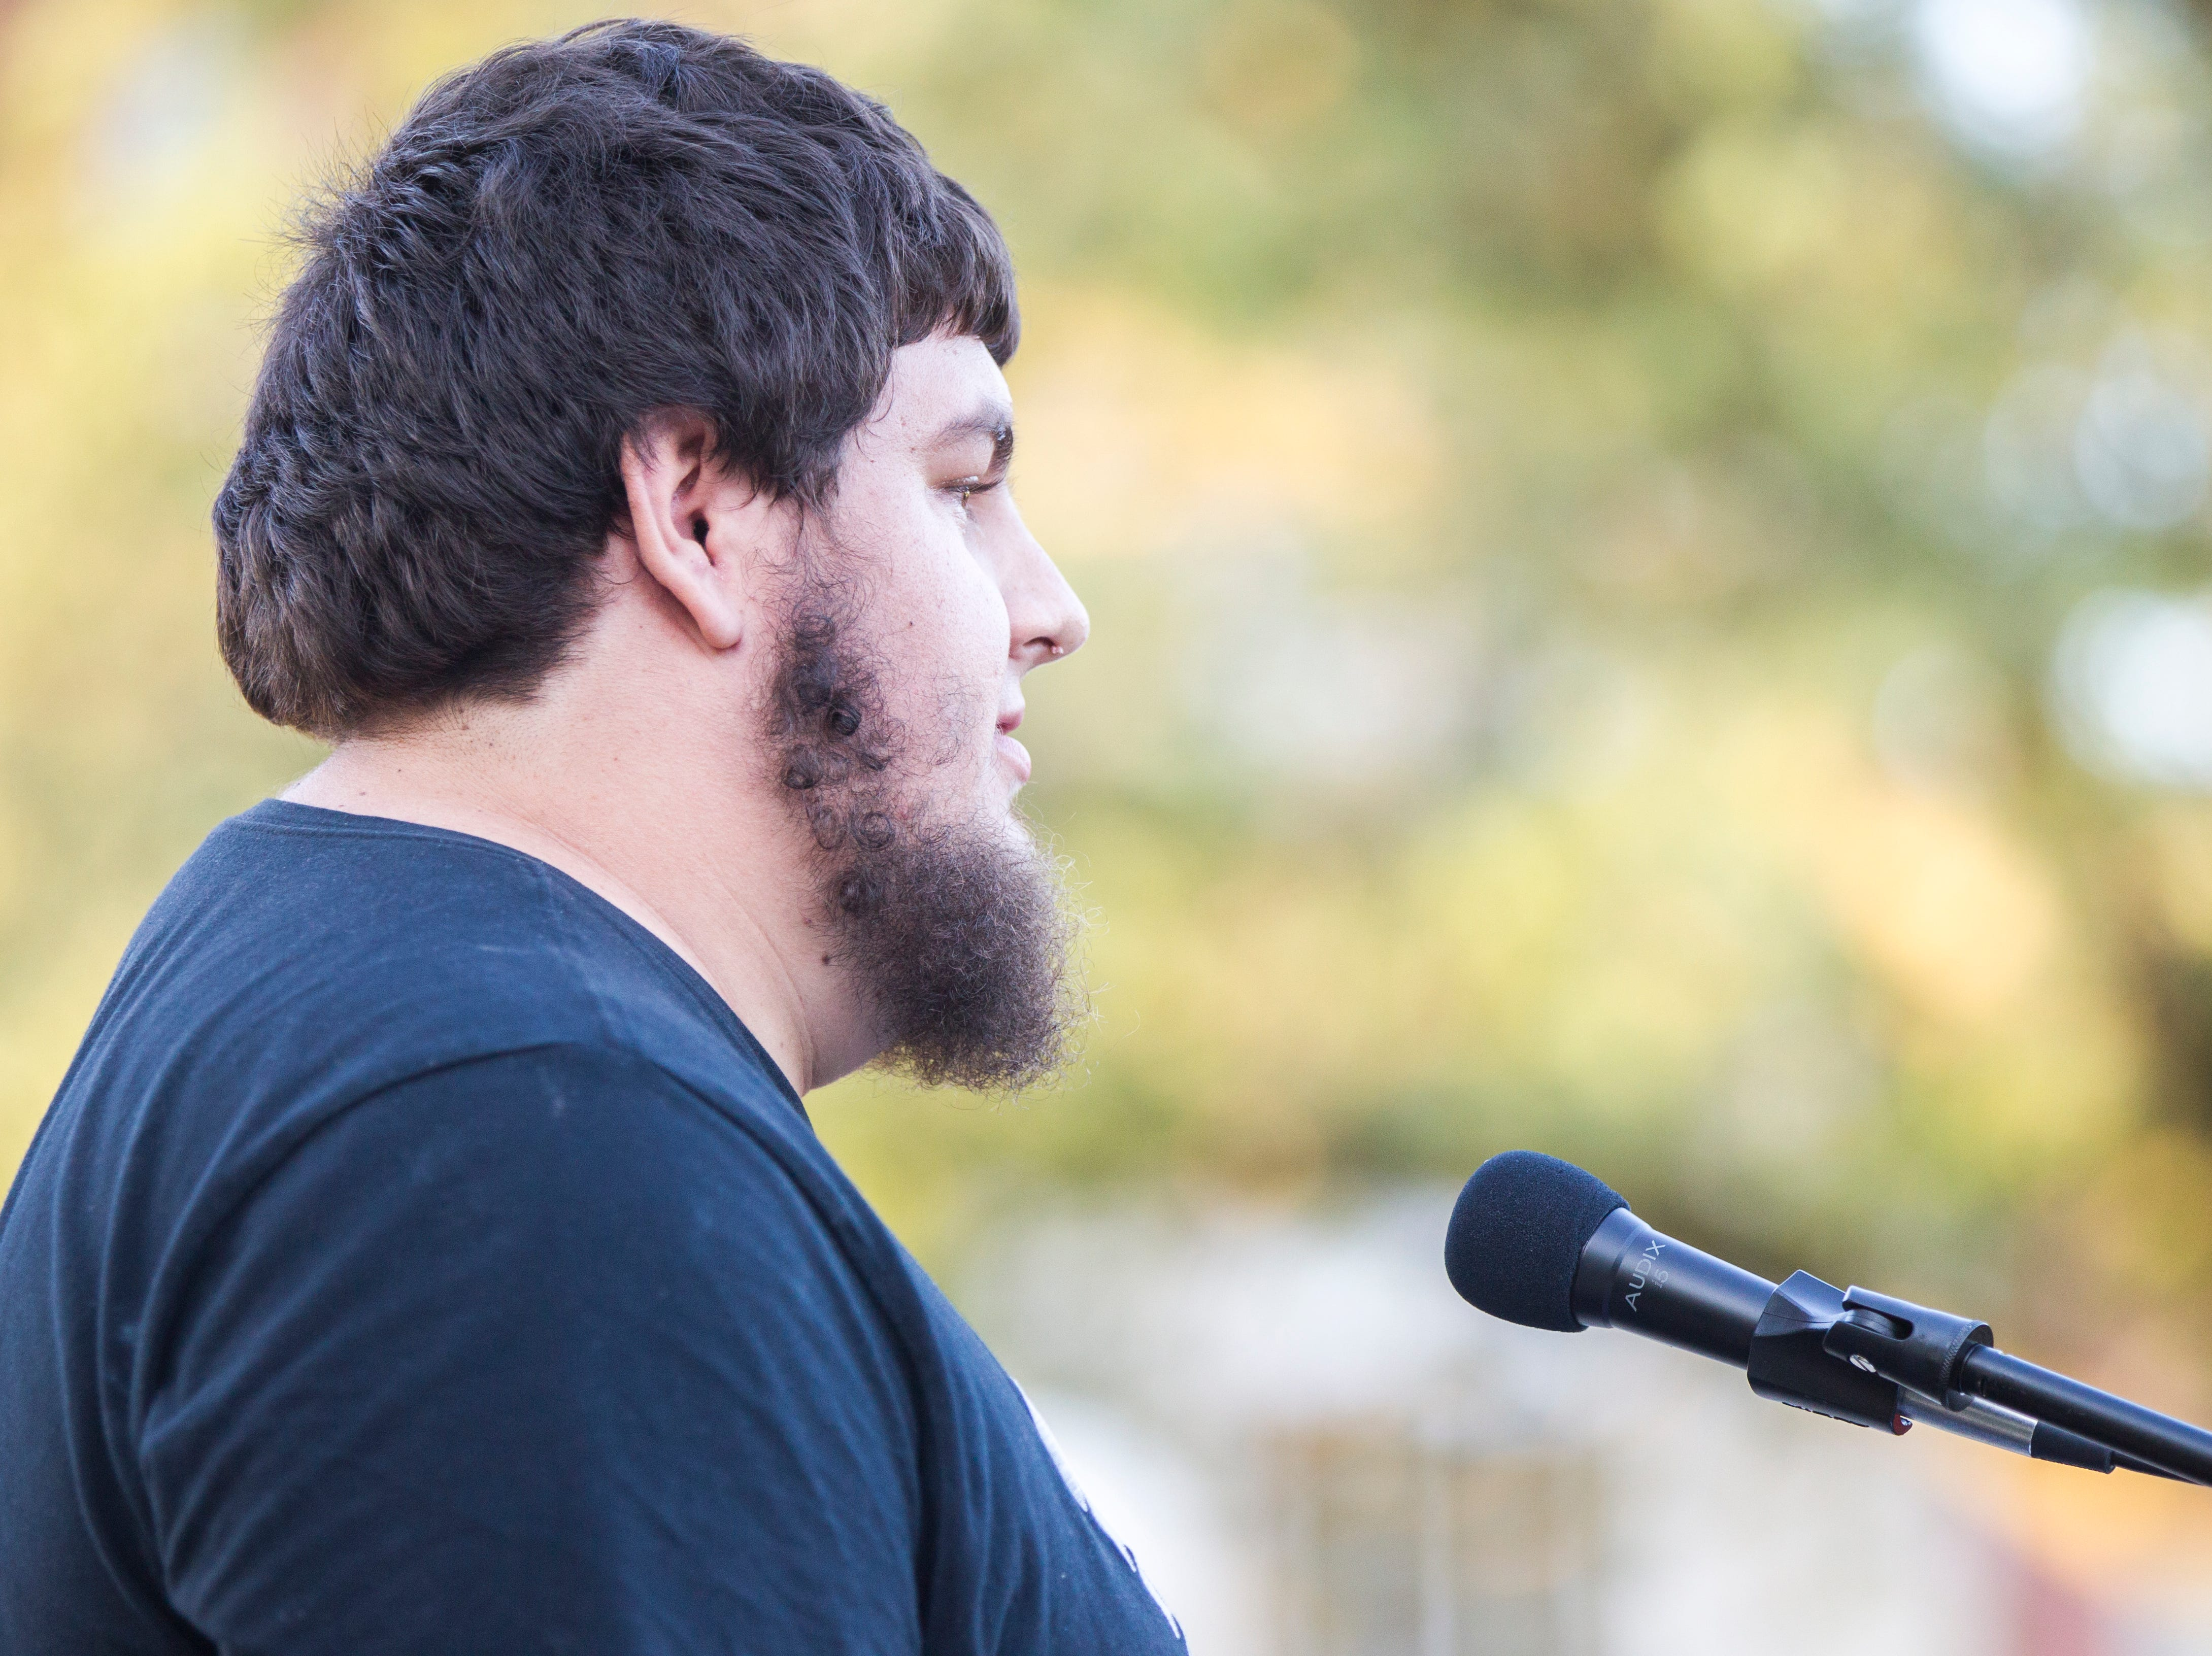 Jake Tibbetts, the brother of Mollie Tibbetts, speaks during a vigil for Mollie Tibbetts on Wednesday, Aug. 22, 2018, in Hubbard Park on the University of Iowa campus in Iowa City.